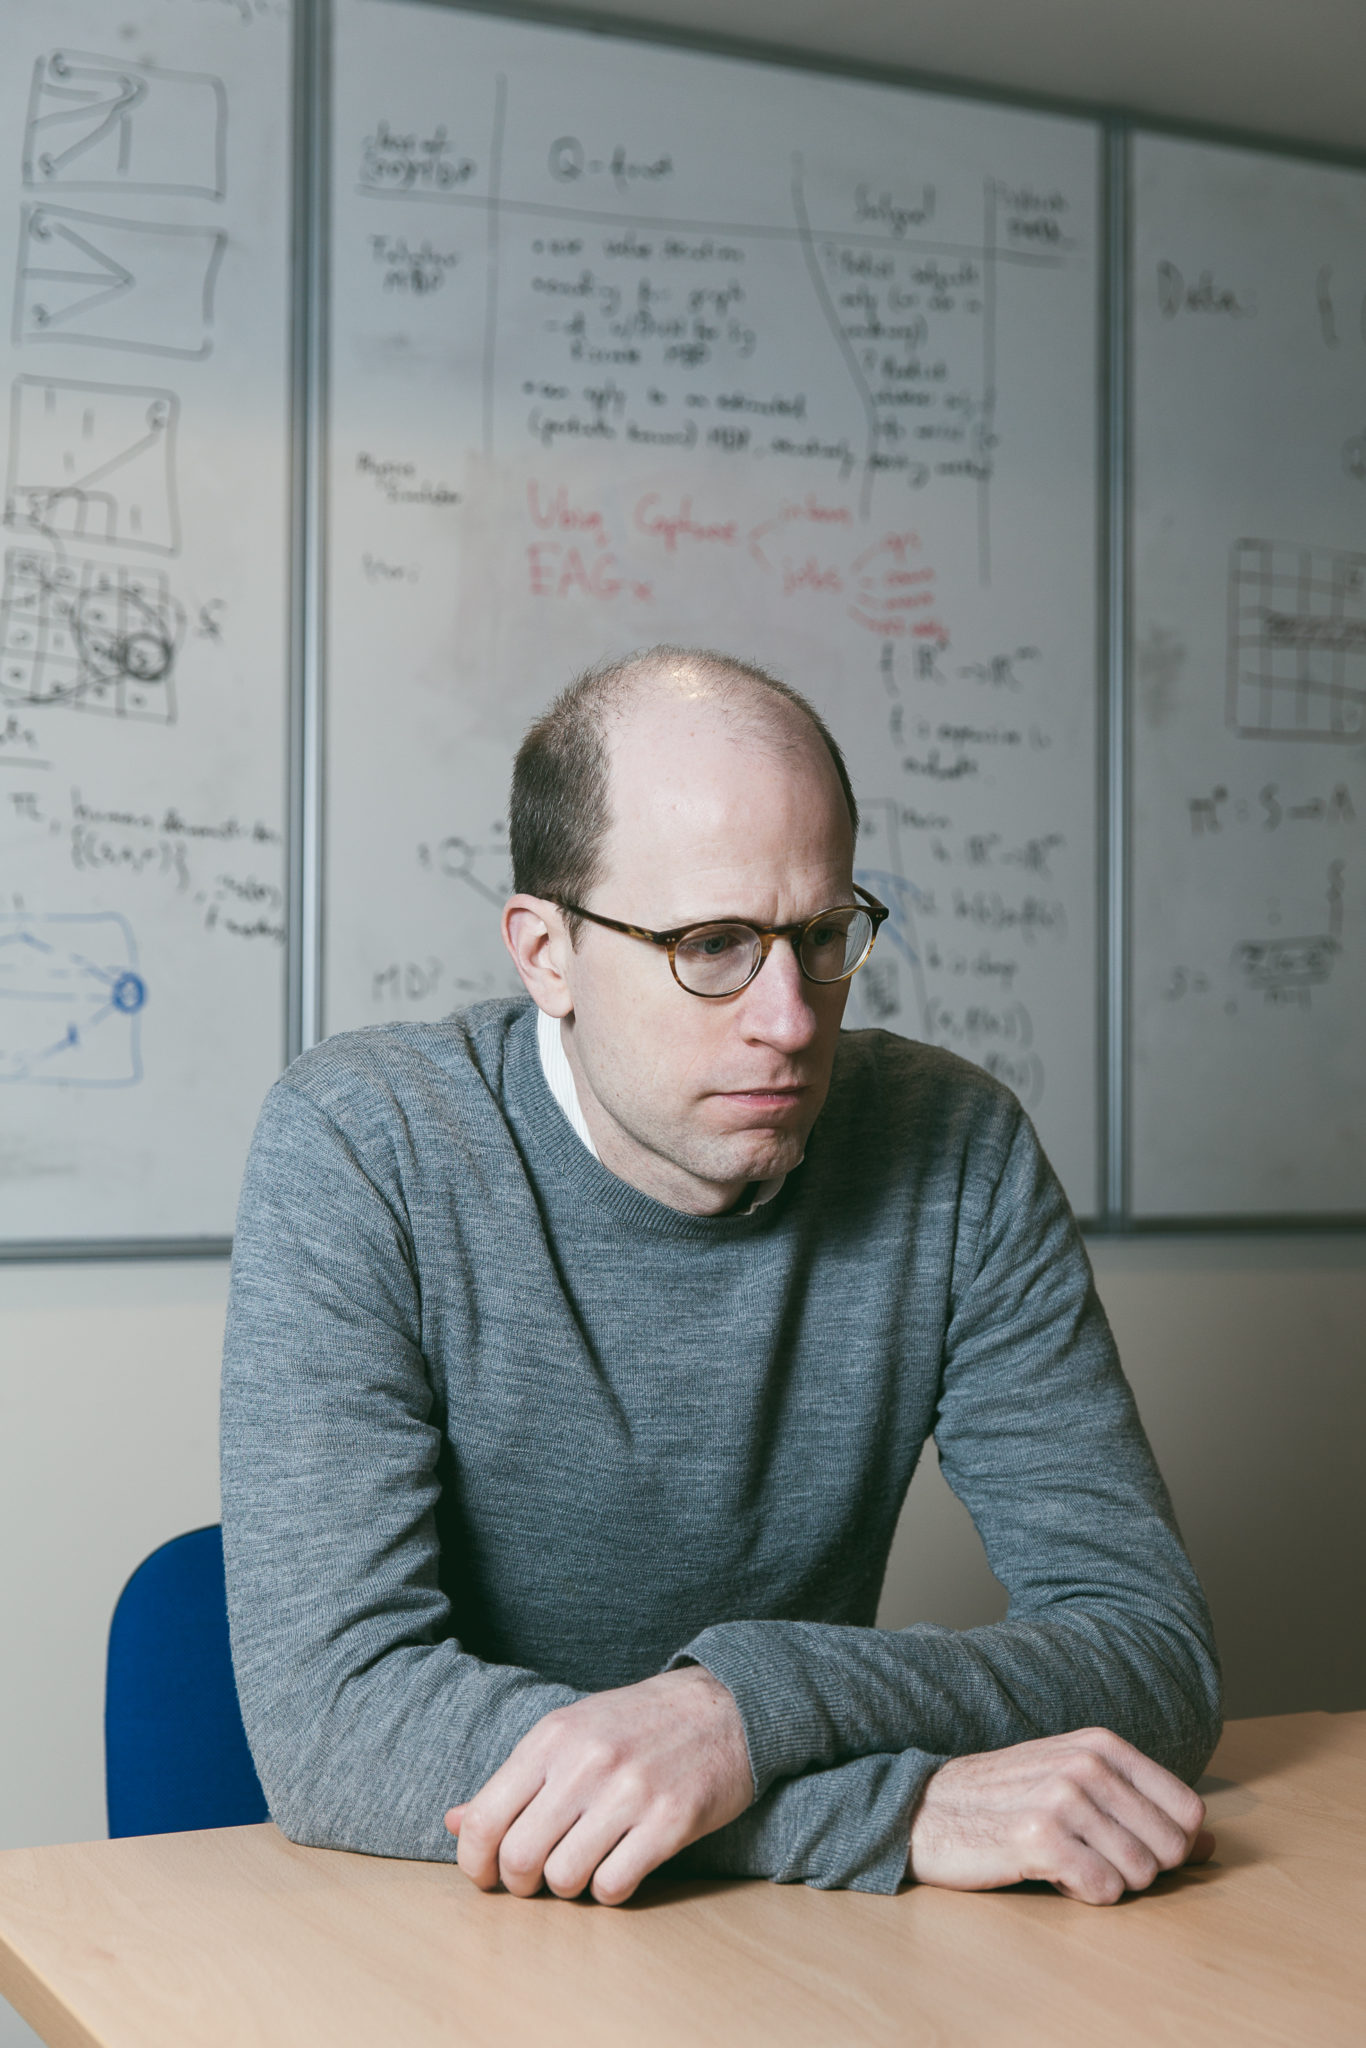 Nick Bostrom. University of Oxford.